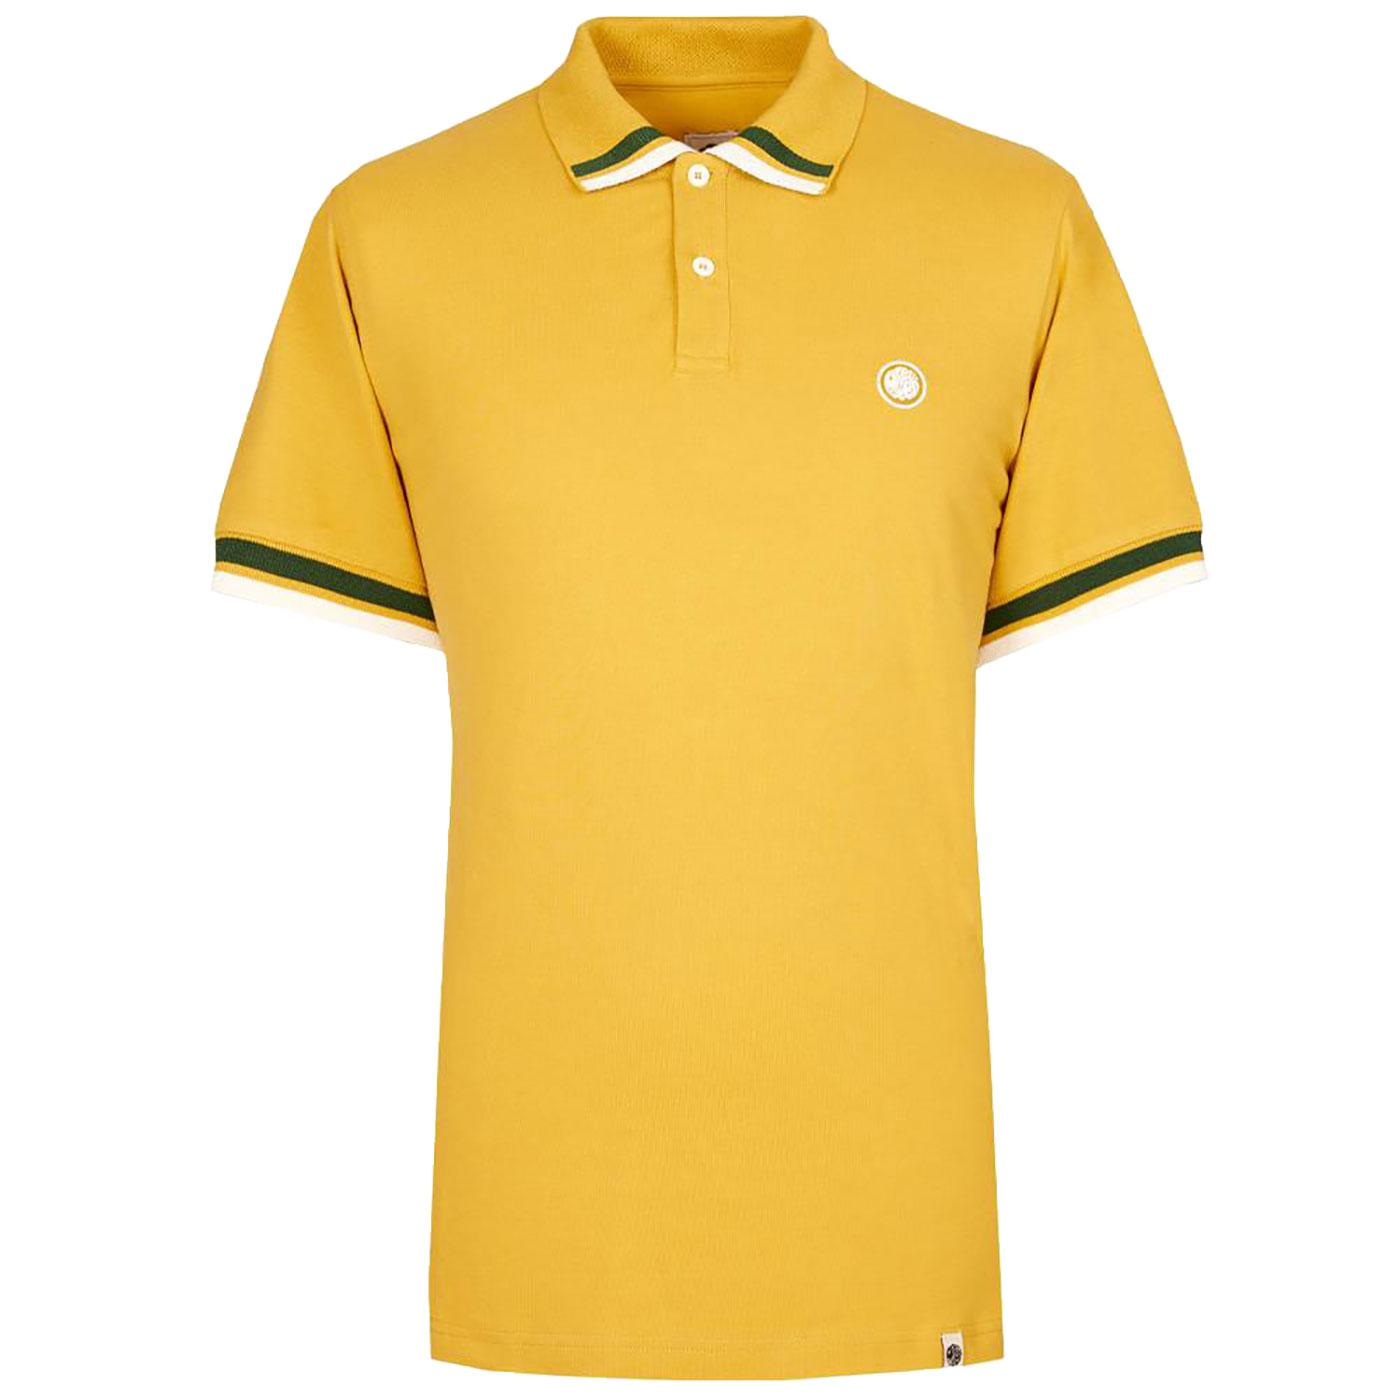 PRETTY GREEN Mod Contrast Tipping Pique Polo (Y)